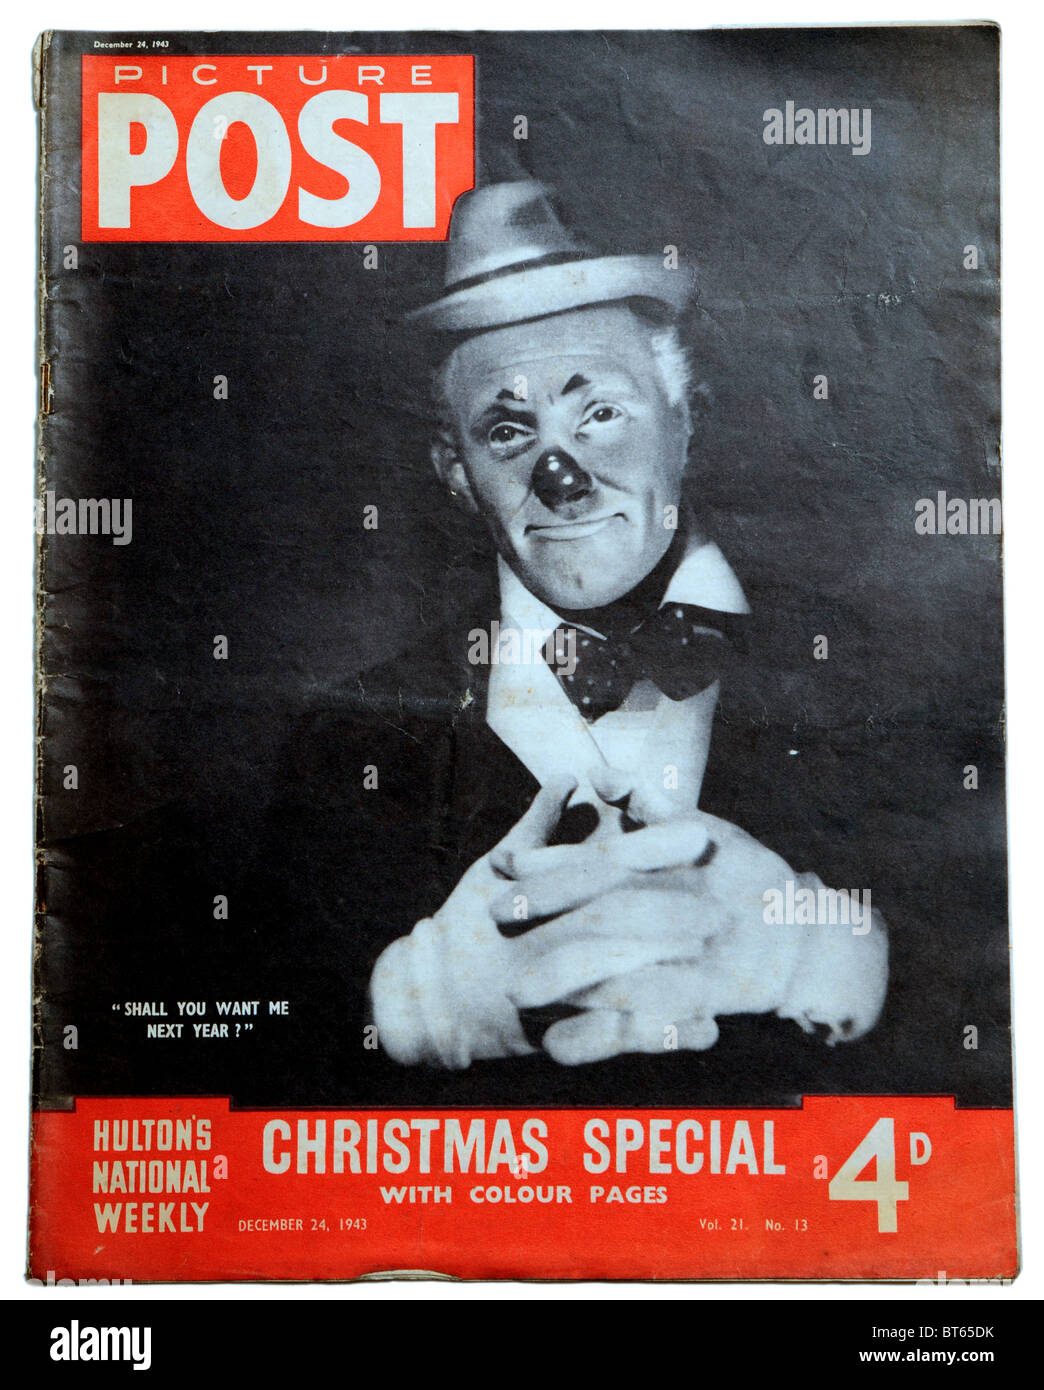 Tommy trinder clown comedian actor red nose 24 december 1943 Picture Post prominent photojournalistic magazine published - Stock Image